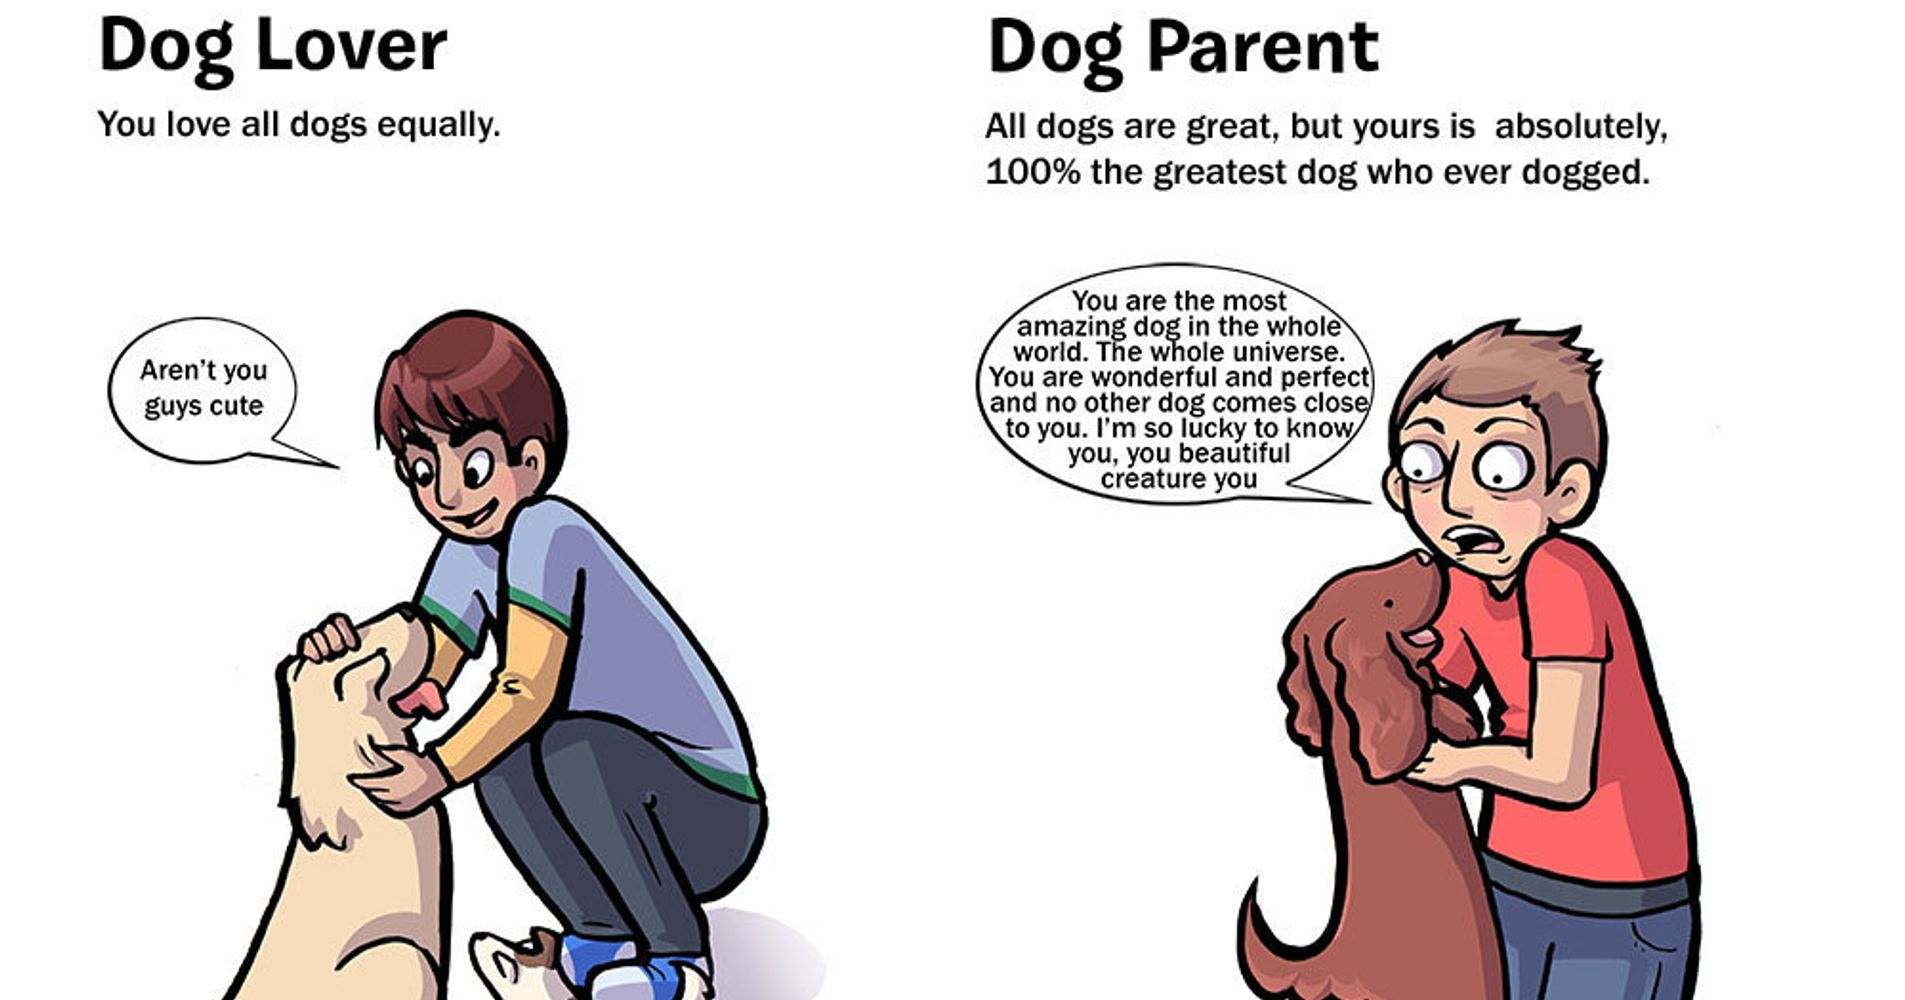 2adc7d3d Hilarious Comic Nails What It's Like To Be A Dog Parent vs. A Dog Lover    HuffPost